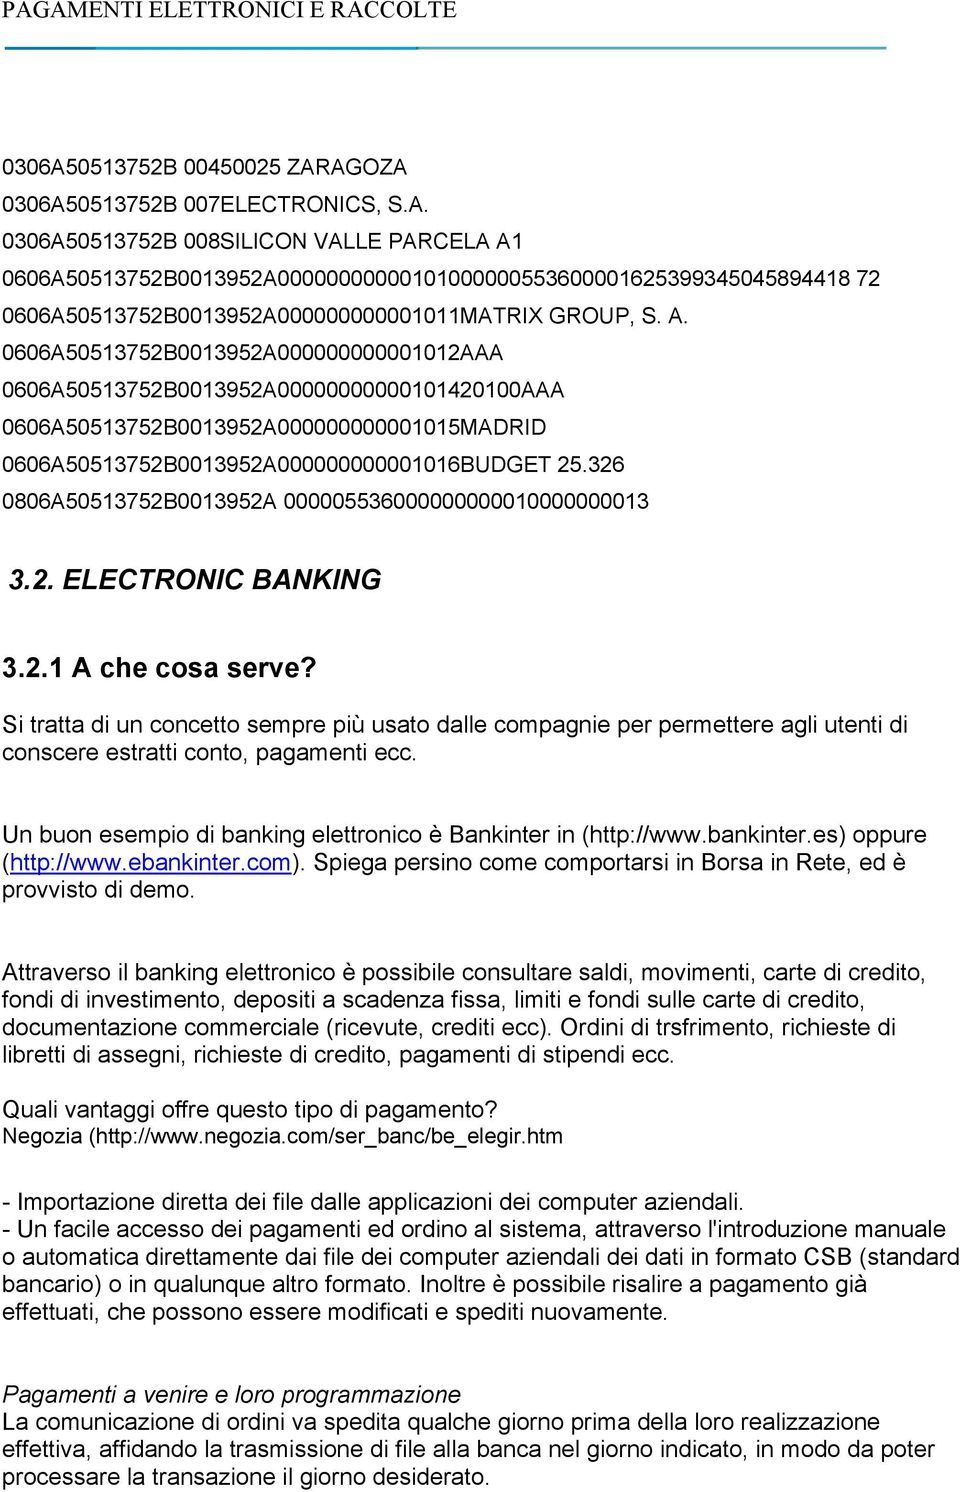 326 0806A50513752B0013952A 000005536000000000010000000013 3.2. ELECTRONIC BANKING 3.2.1 A che cosa serve?